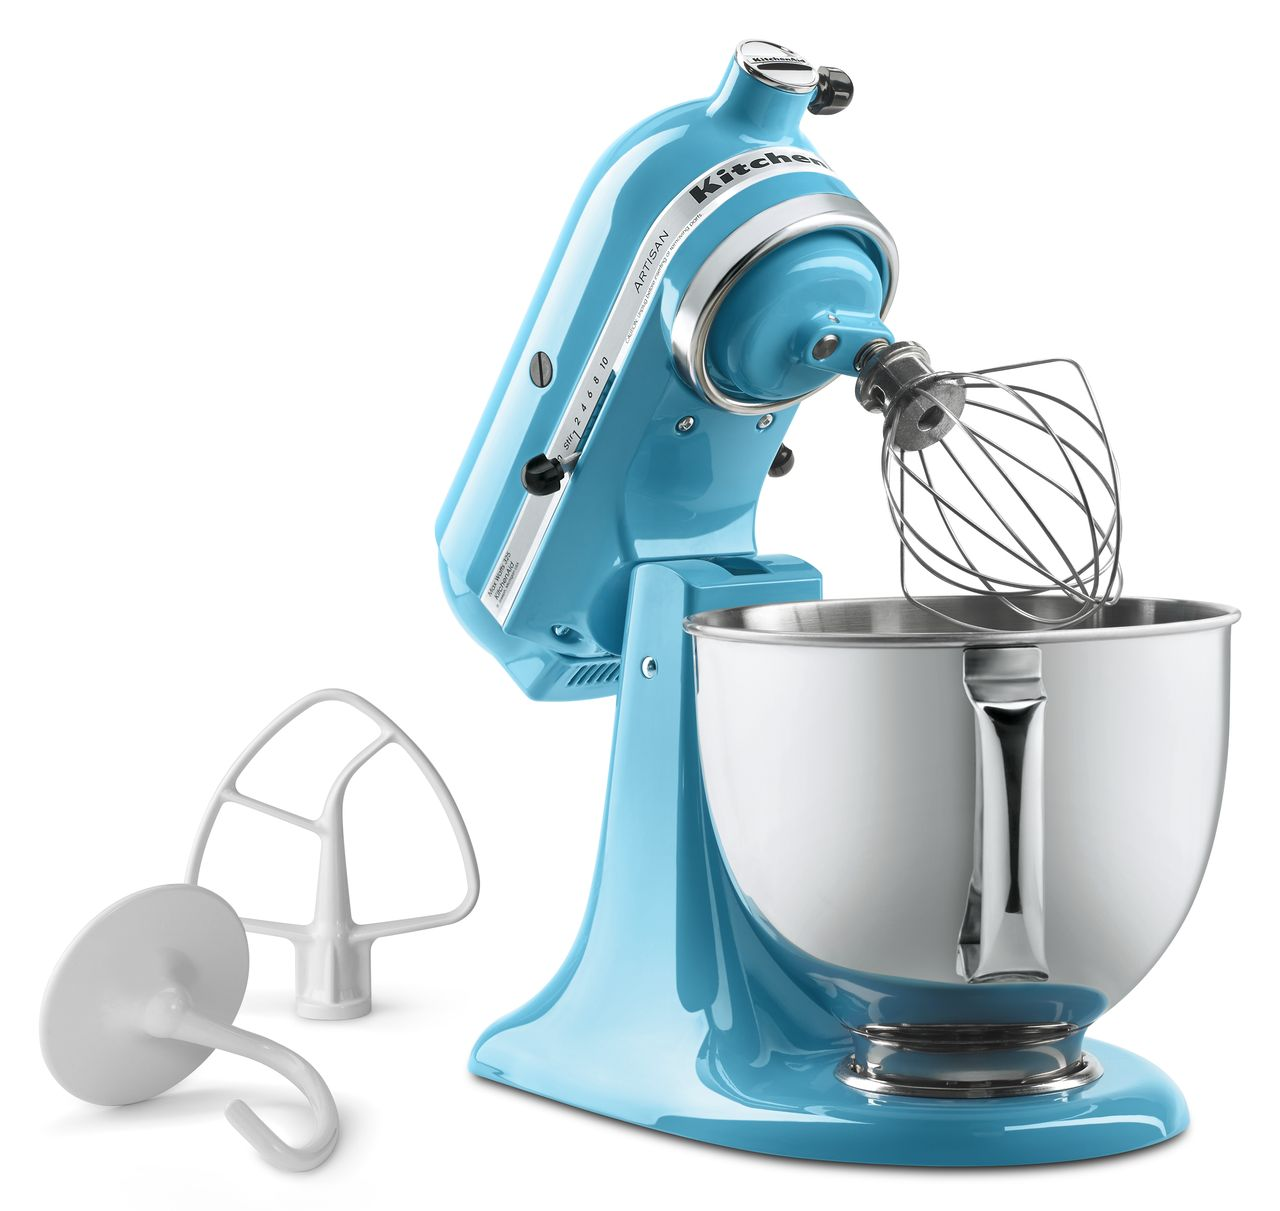 KitchenAid-Refurbished-Artisan-Series-5-Quart-Tilt-Head-Stand-Mixer-RRK150 thumbnail 38